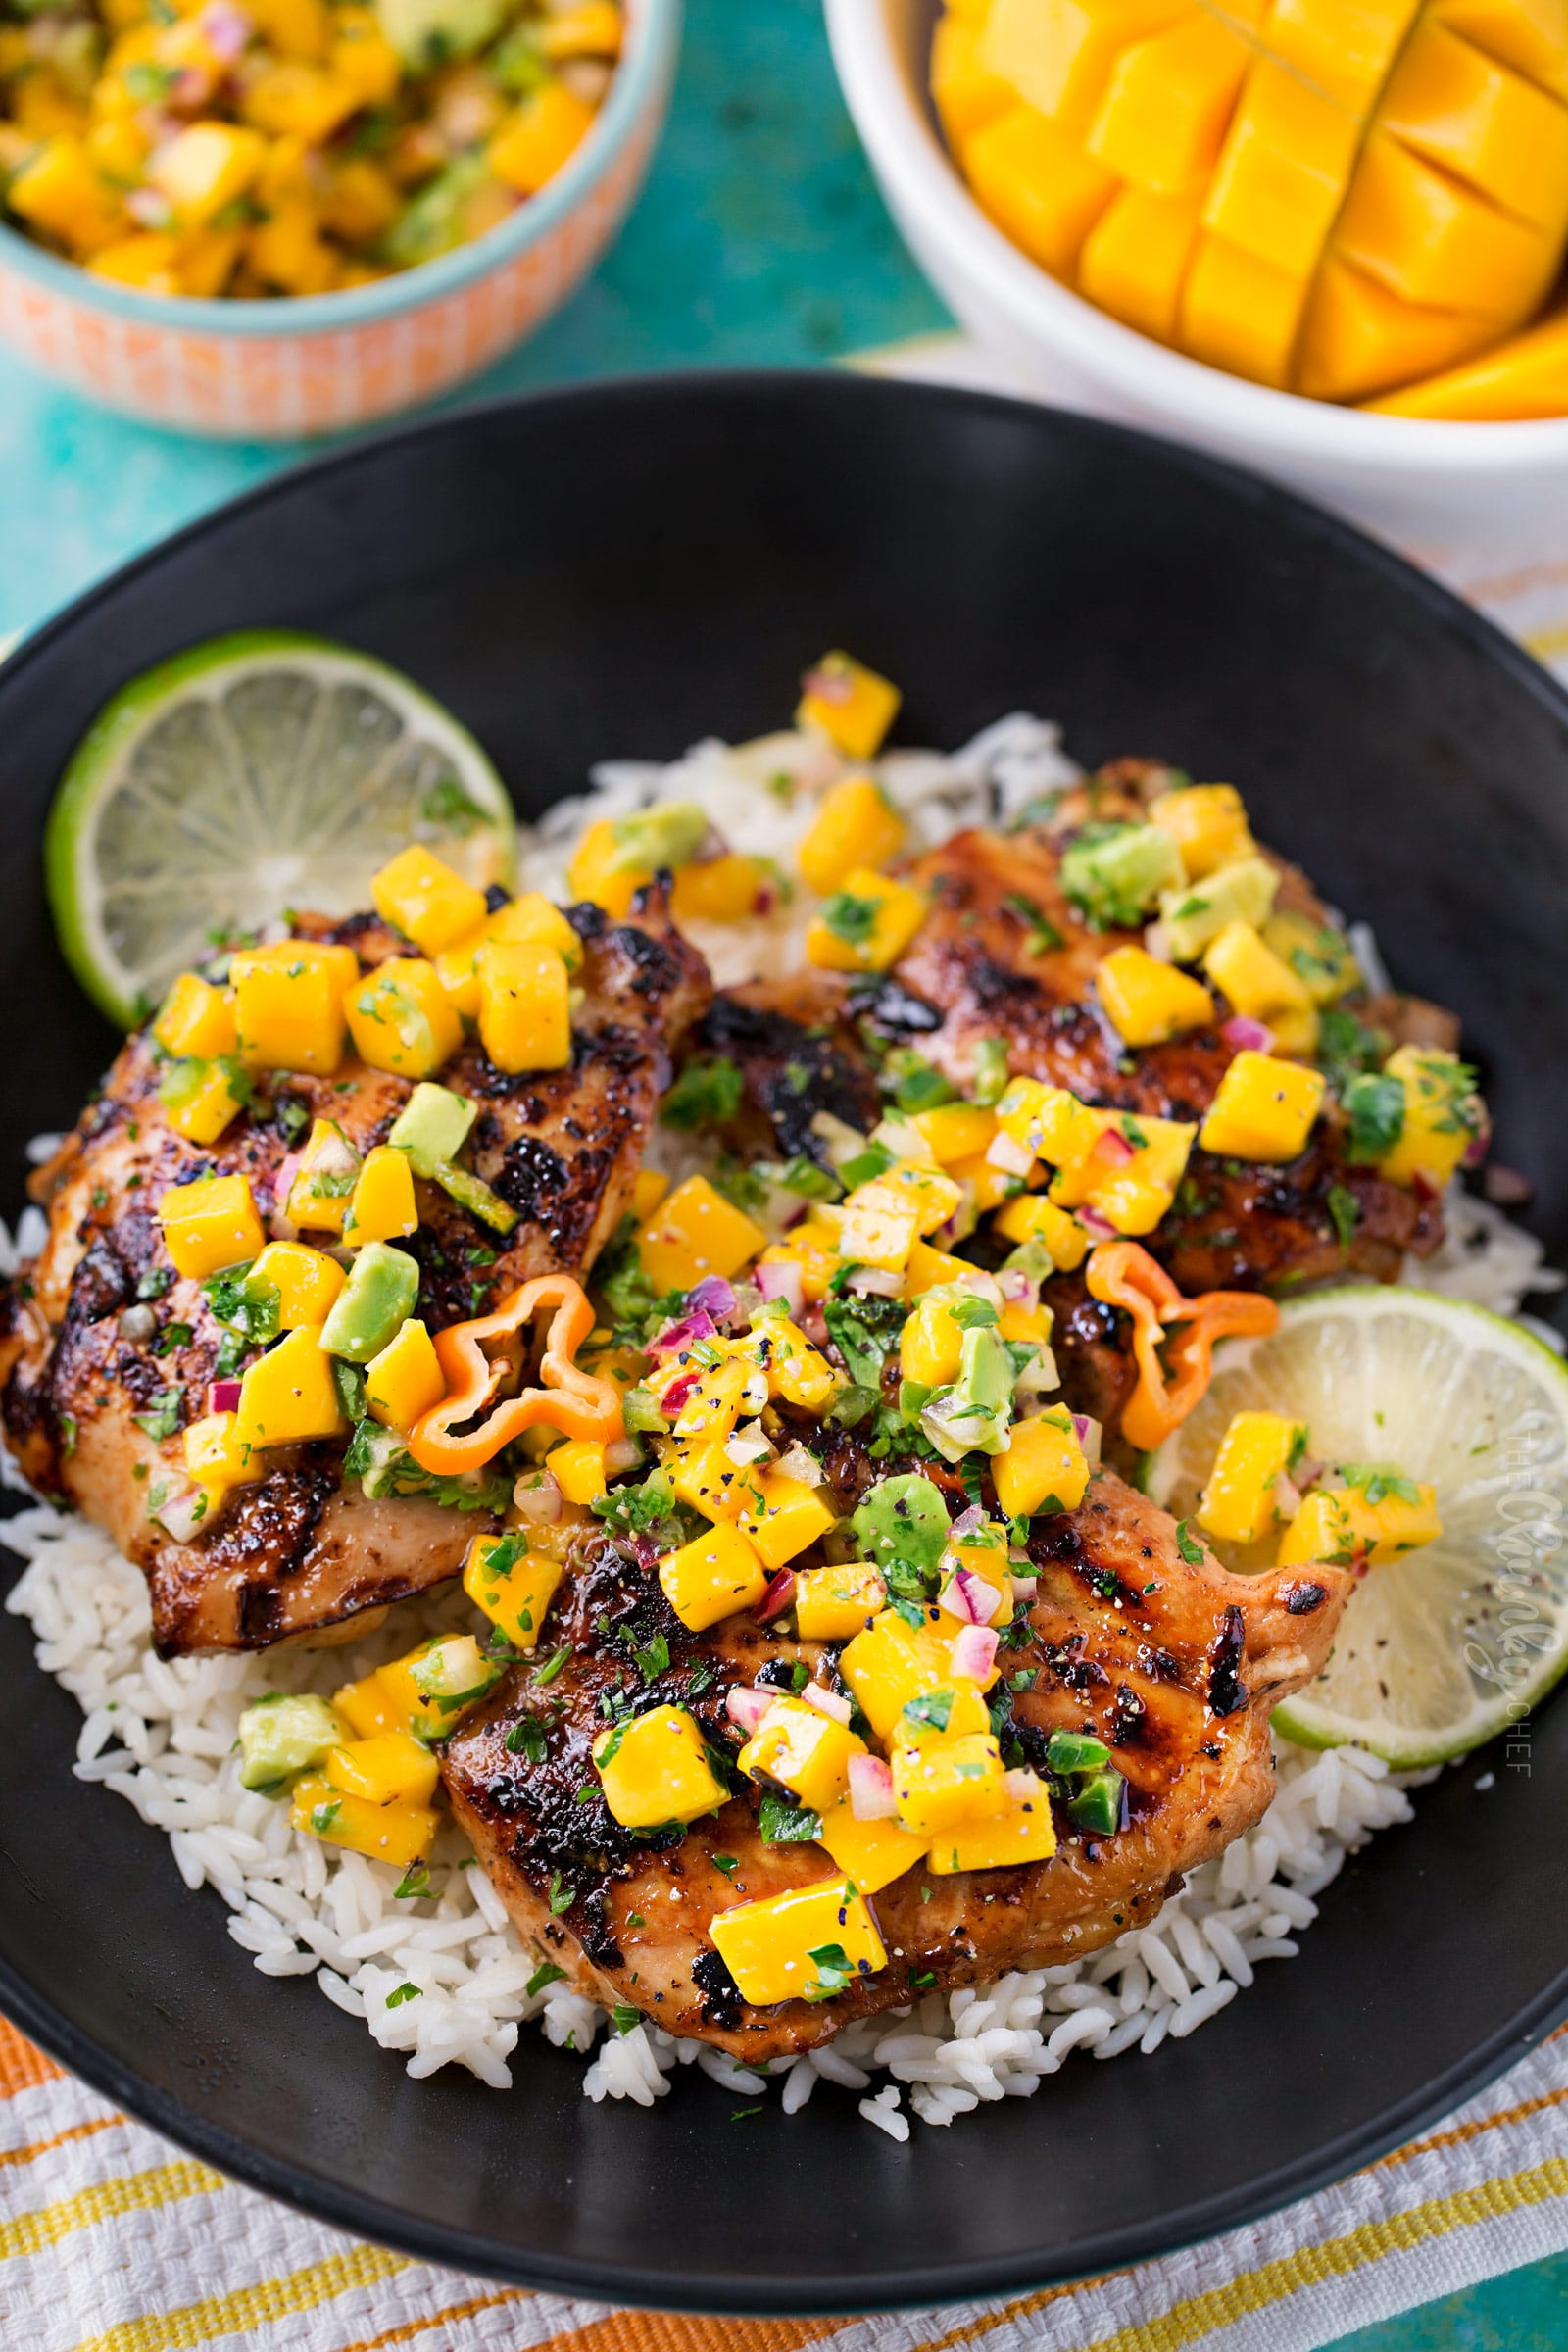 Jerk Chicken Thighs with Avocado Mango Salsa | Perfect for a busy weeknight, this chicken recipe comes together quickly and tastes amazing!  The avocado mango salsa is nutritious and phenomenal on the chicken, or with chips! | https://thechunkychef.com